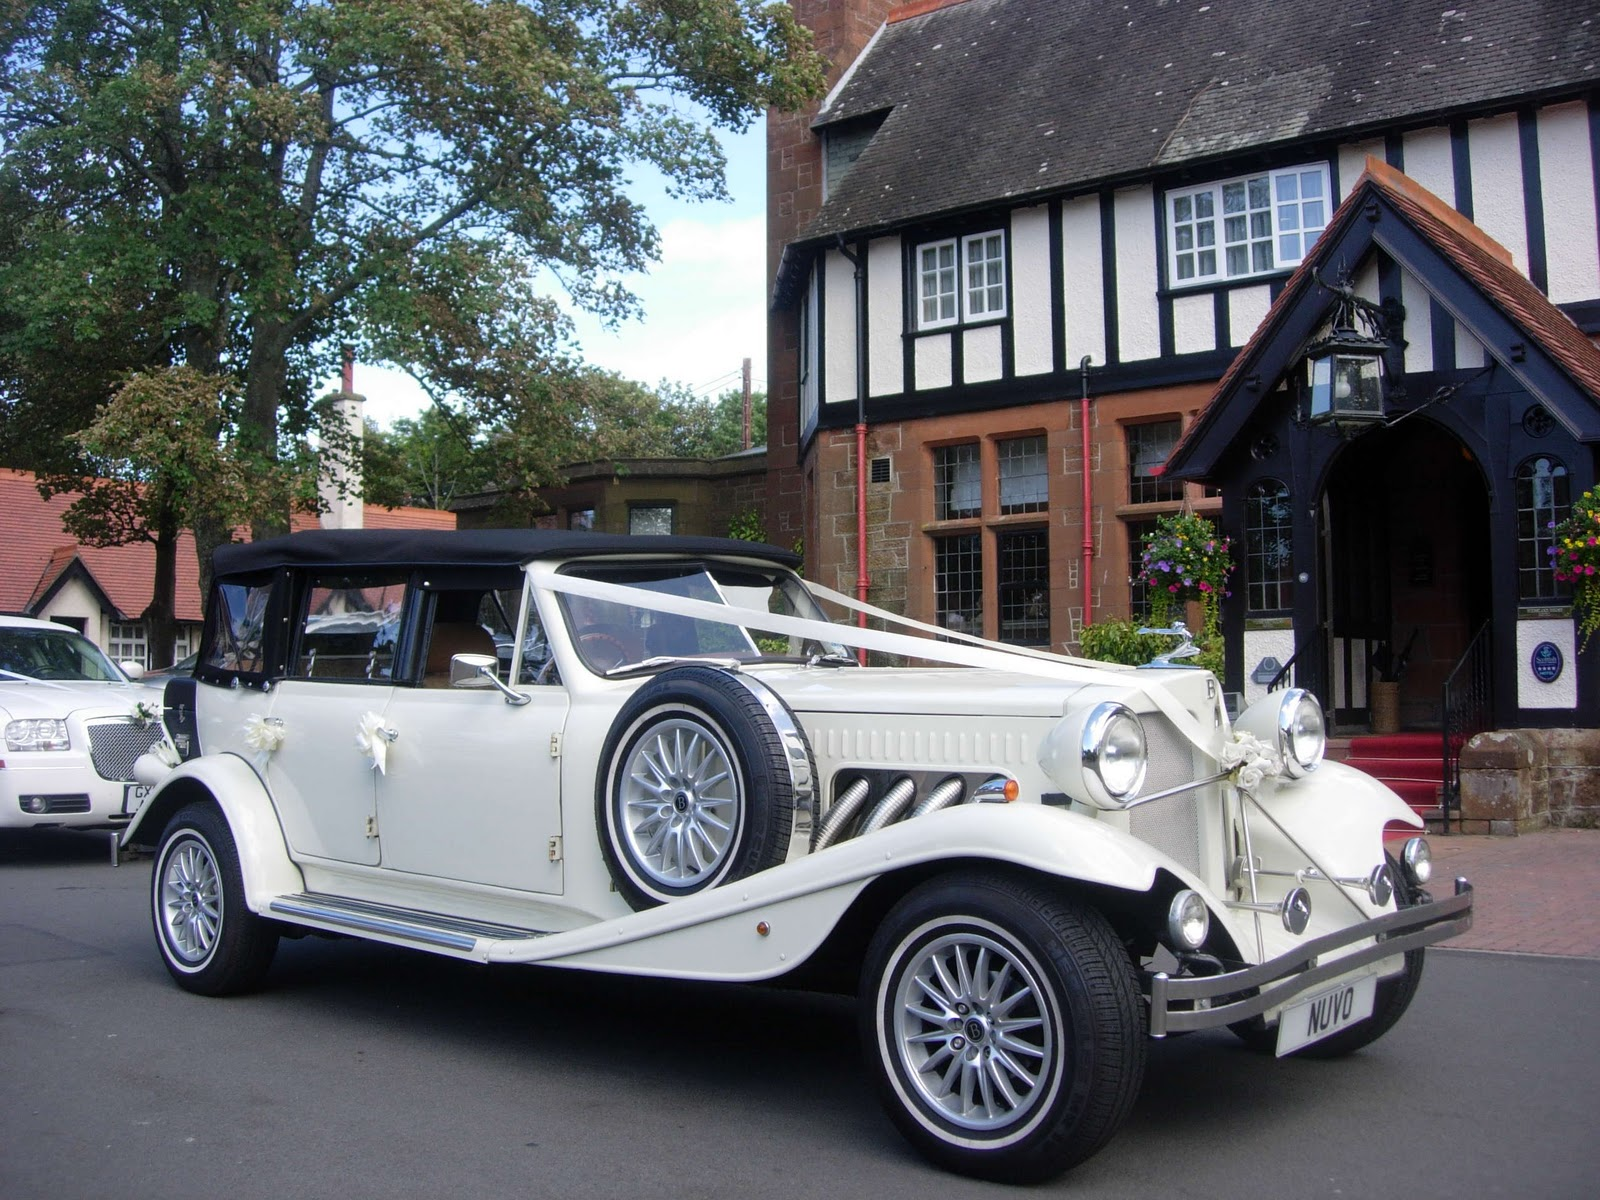 Baby Bentley Glasgow Beauford Newton Mearns Wedding Car Cars Ayrshire In